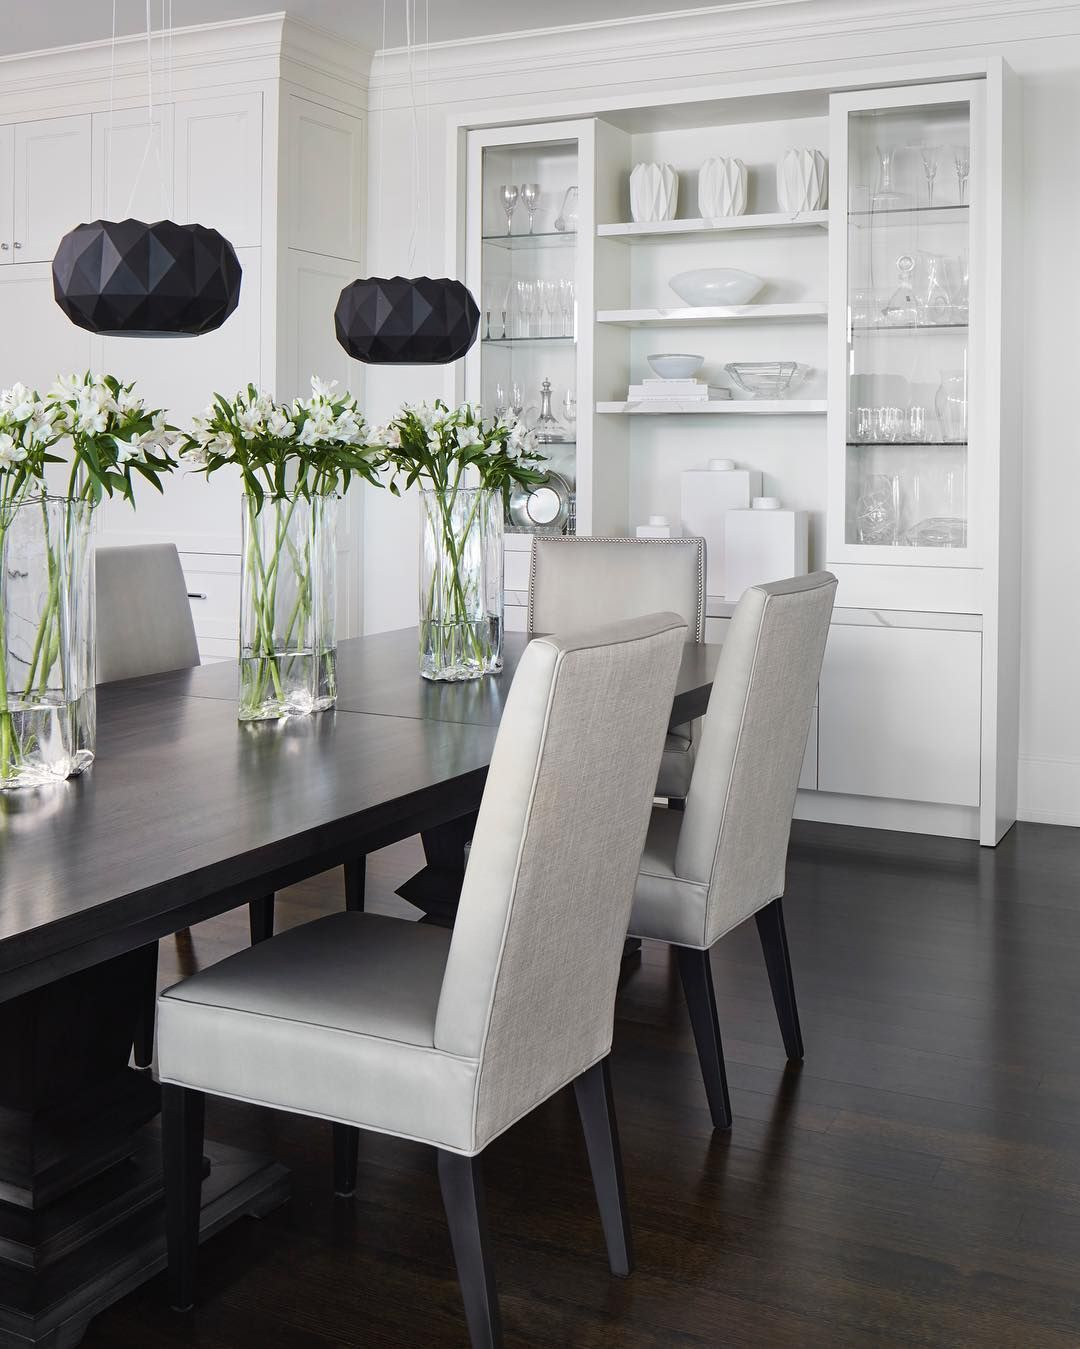 Dining Room Ideas Dining Room Decor Dining Room Furniture Dining Tables Dining Chairs Si In 2020 Modern Dining Room Traditional Dining Rooms Boho Dining Room